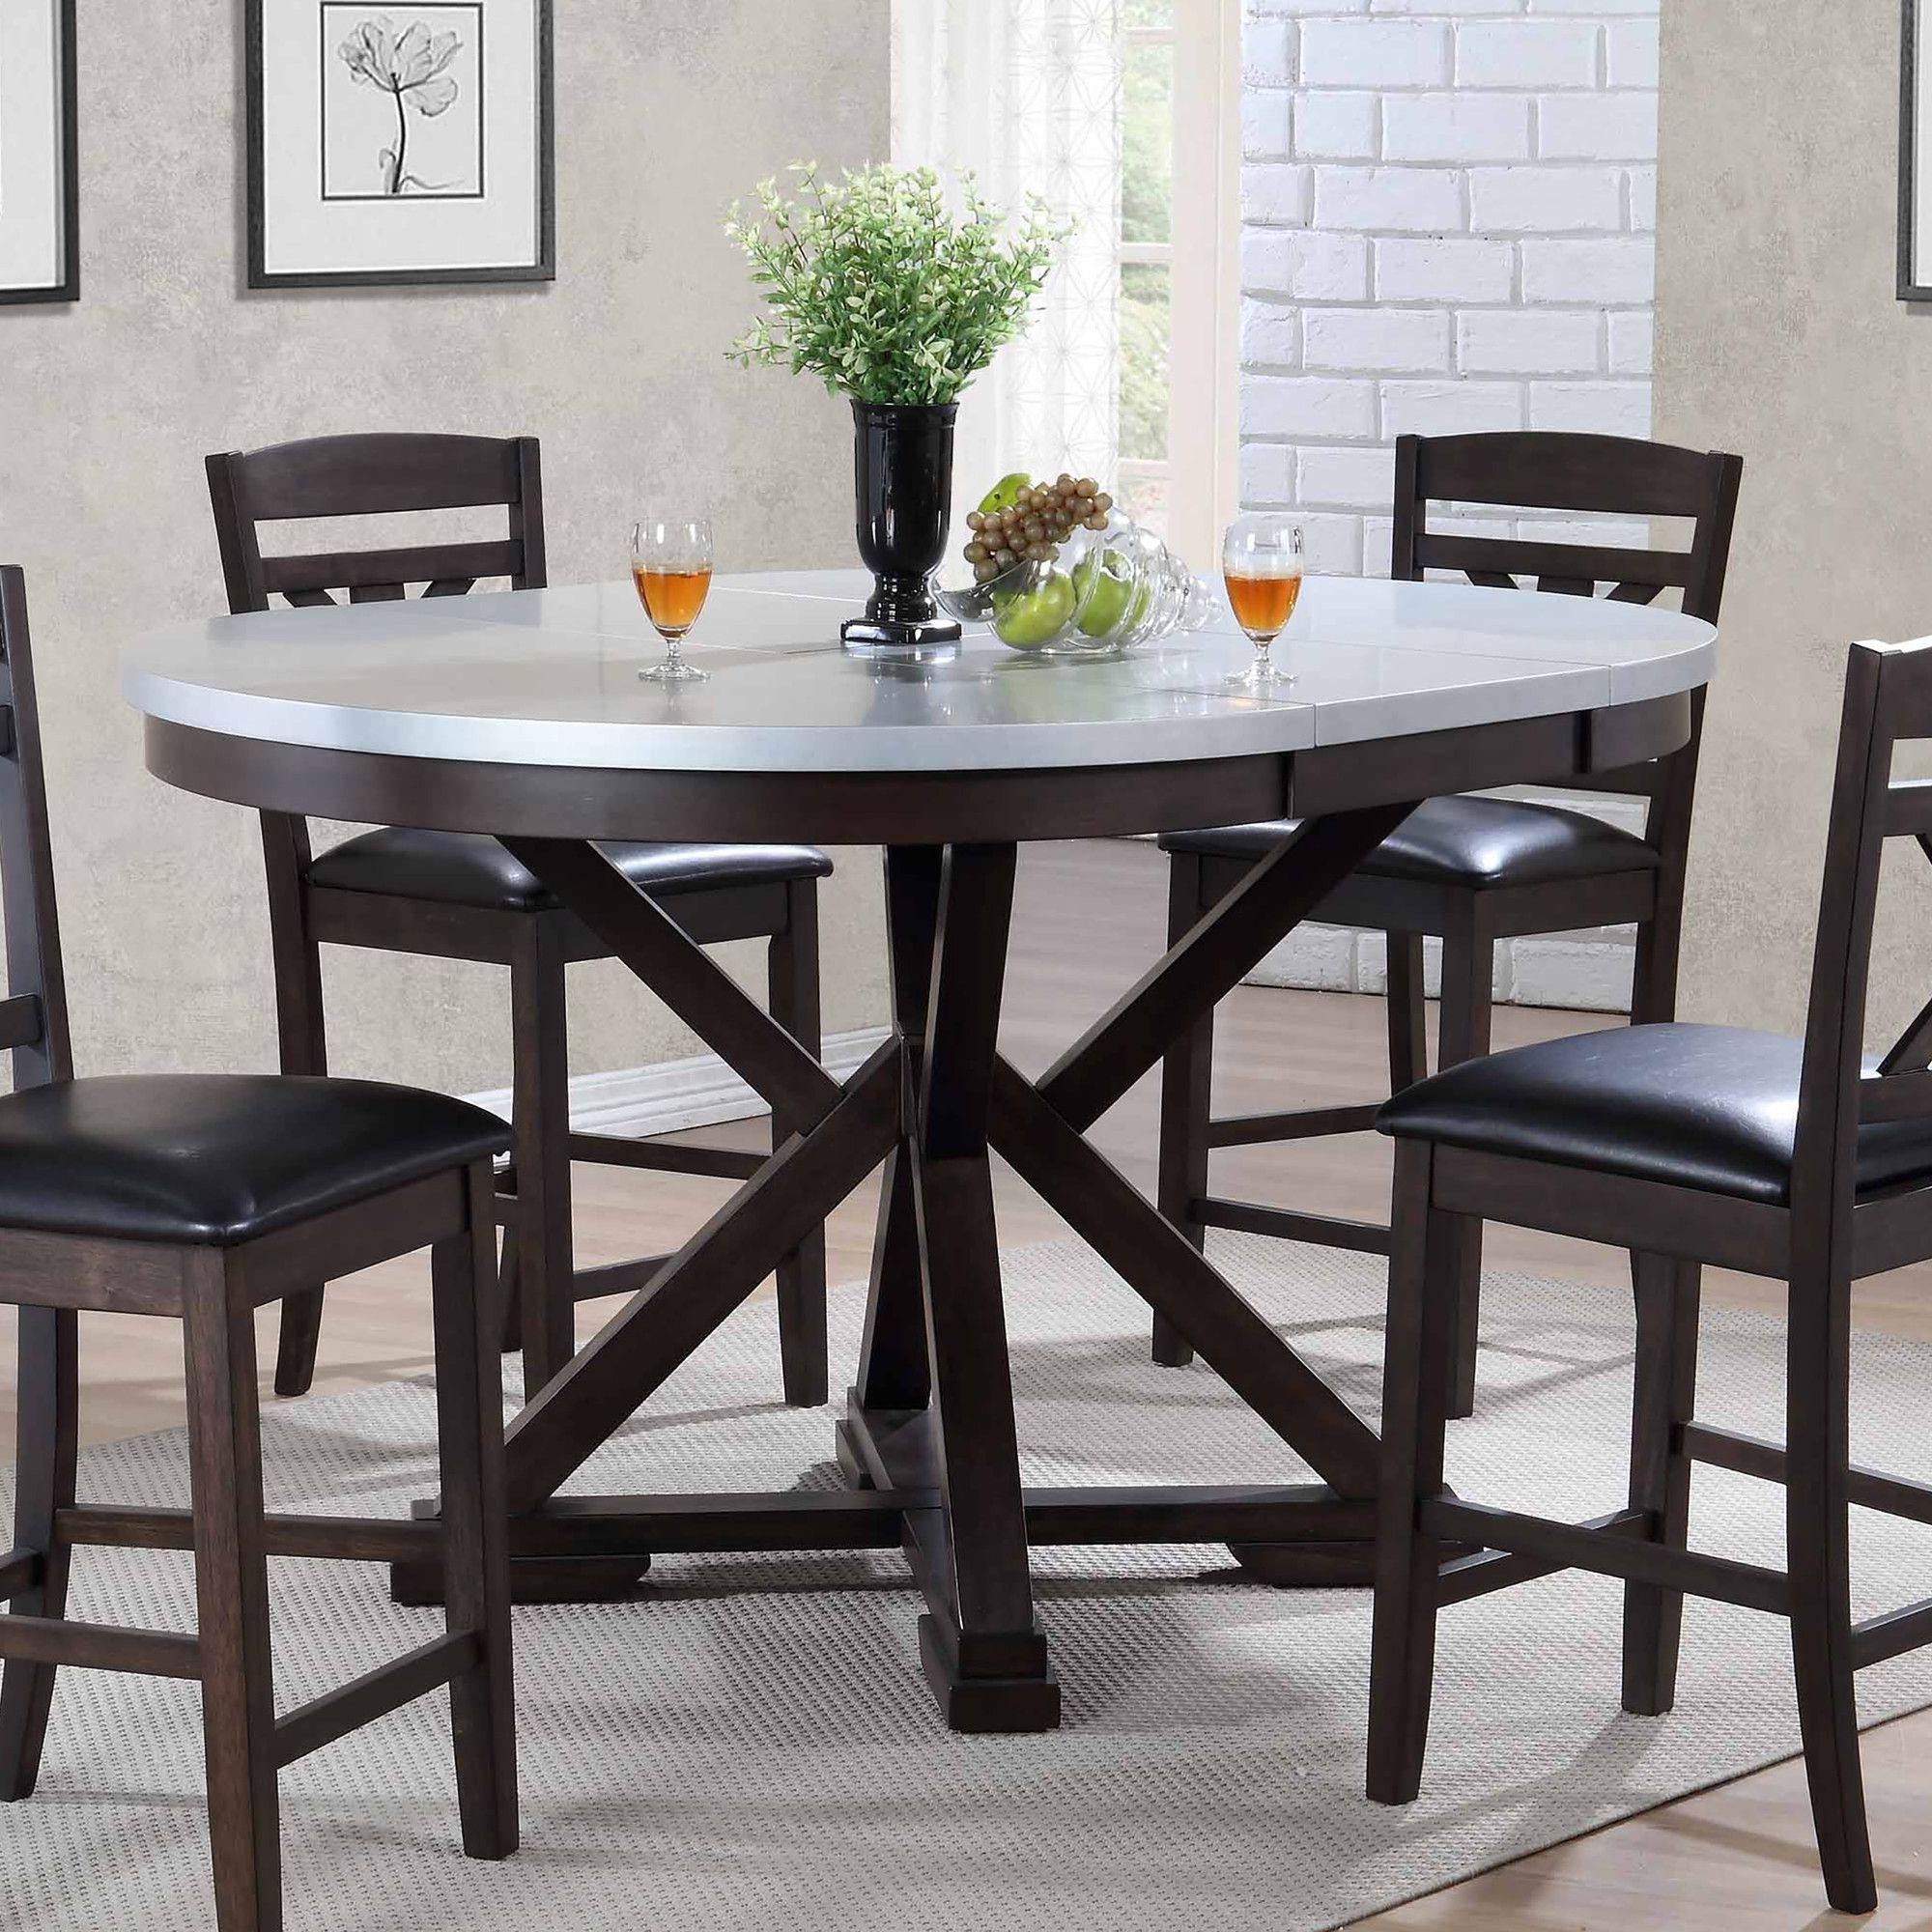 Hamilton Uv Counter Height Dining Table (View 10 of 25)